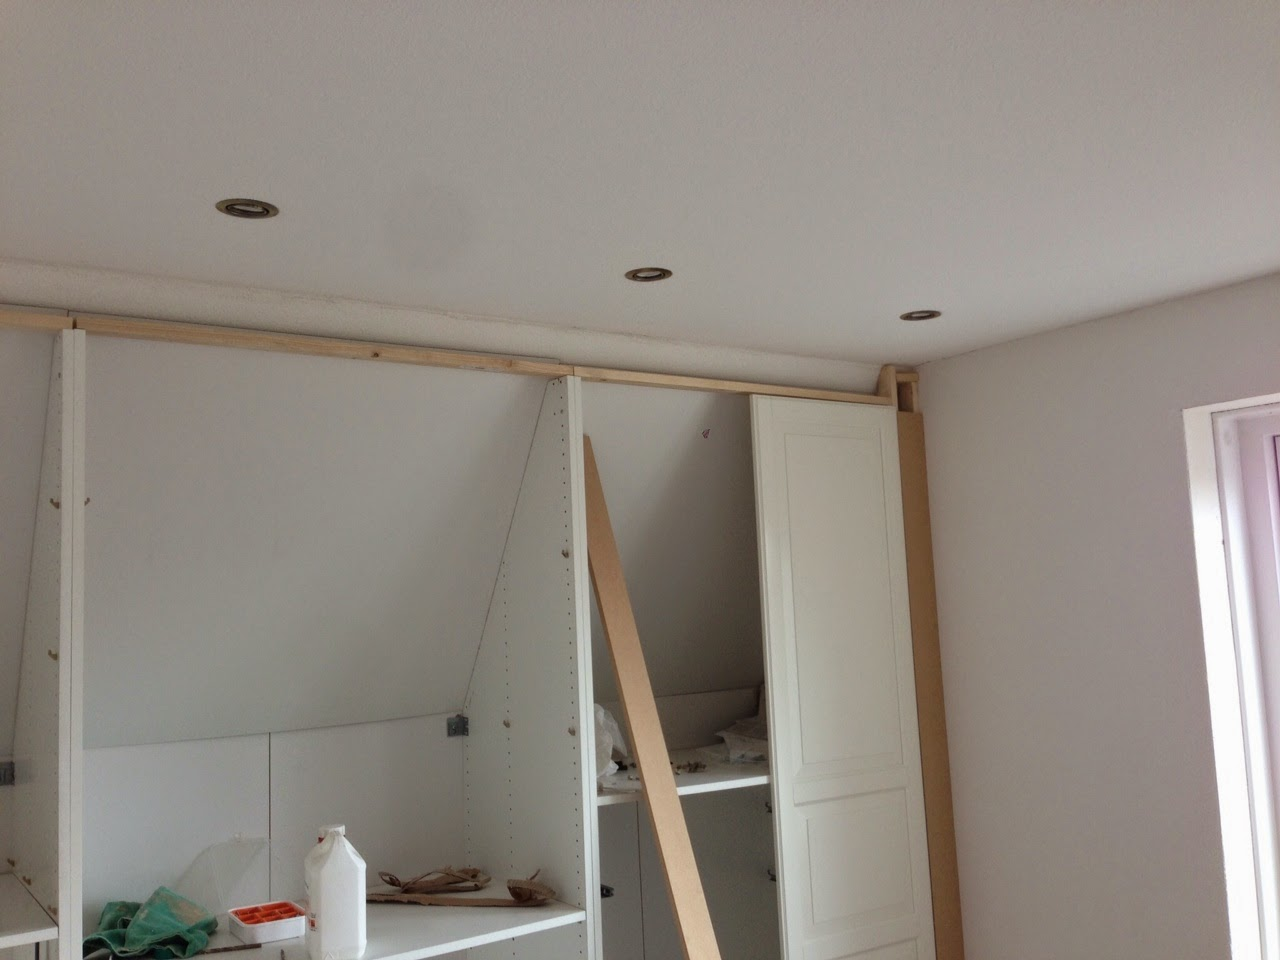 diy attic conversion ideas - Pax Built in for sloping ceiling IKEA Hackers IKEA Hackers